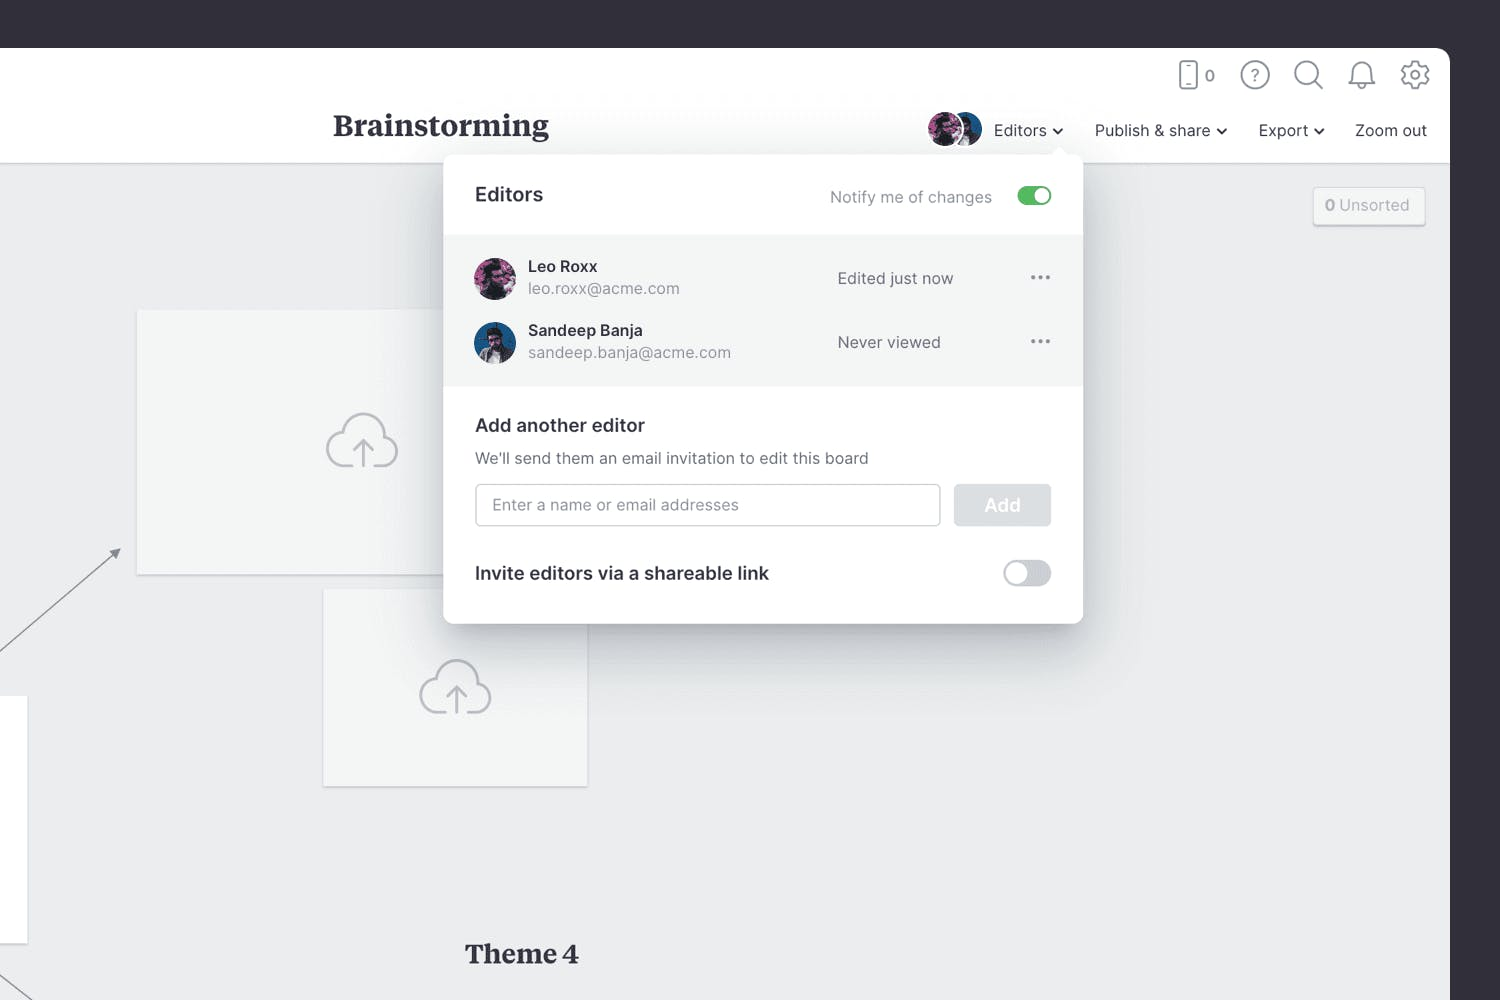 Inviting people to brainstorm game ideas